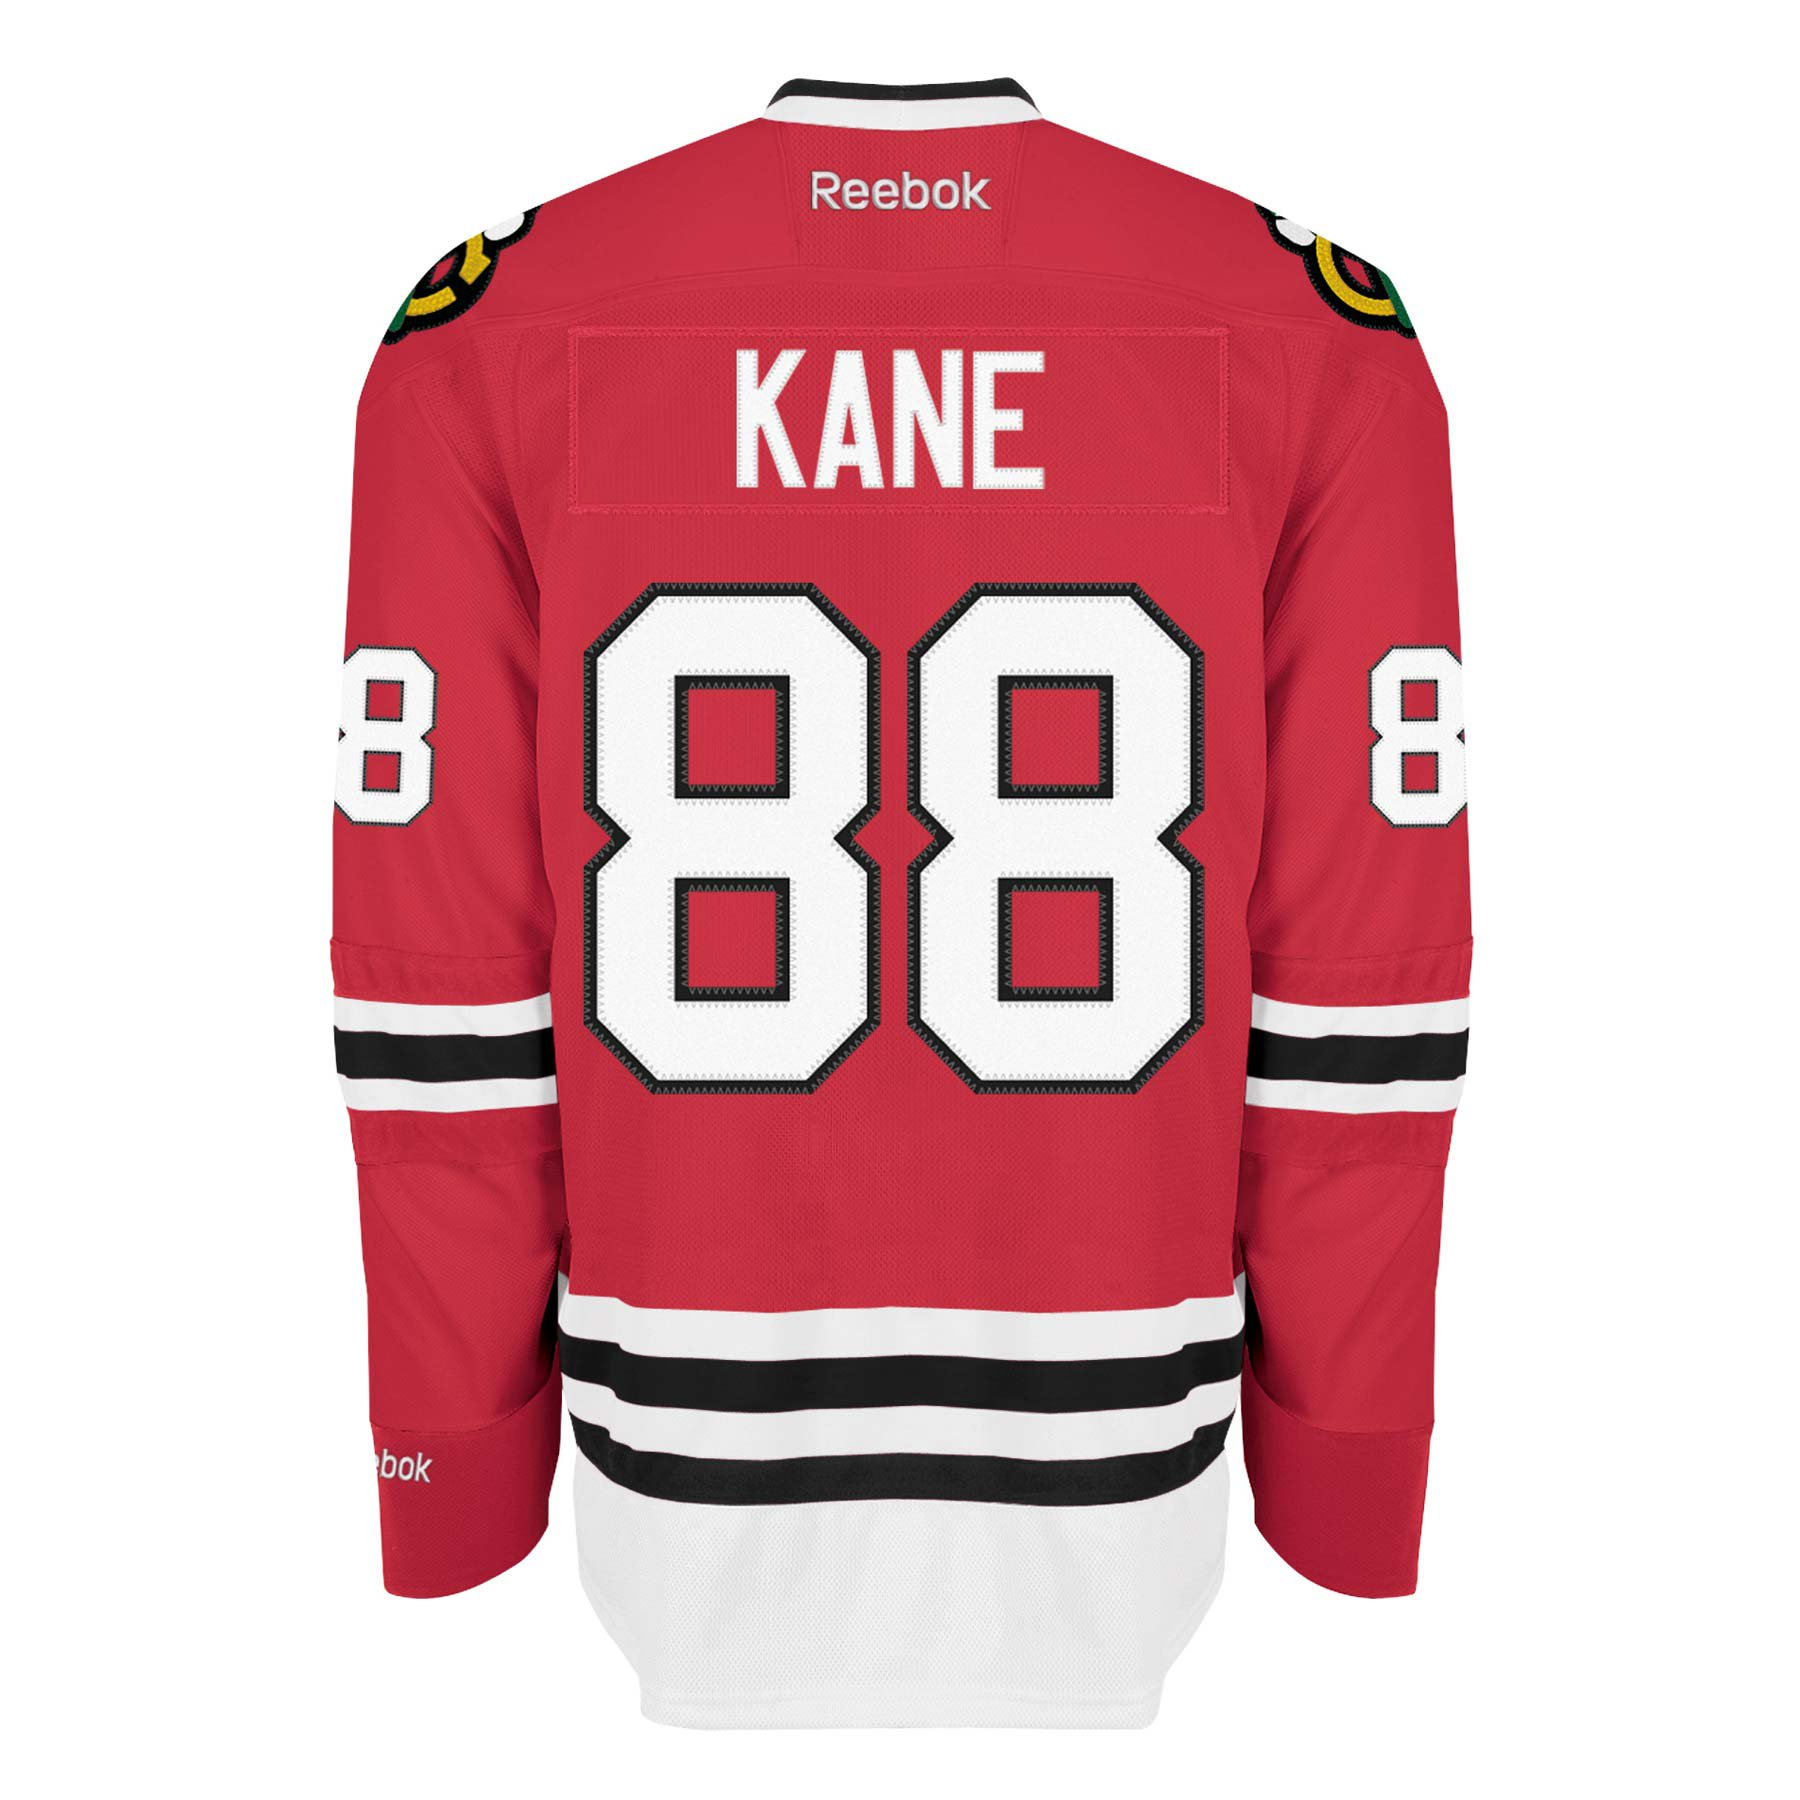 Chicago - Patrick Hockey Kane Replica Blackhawks Nhl Premier Reebok Large Home